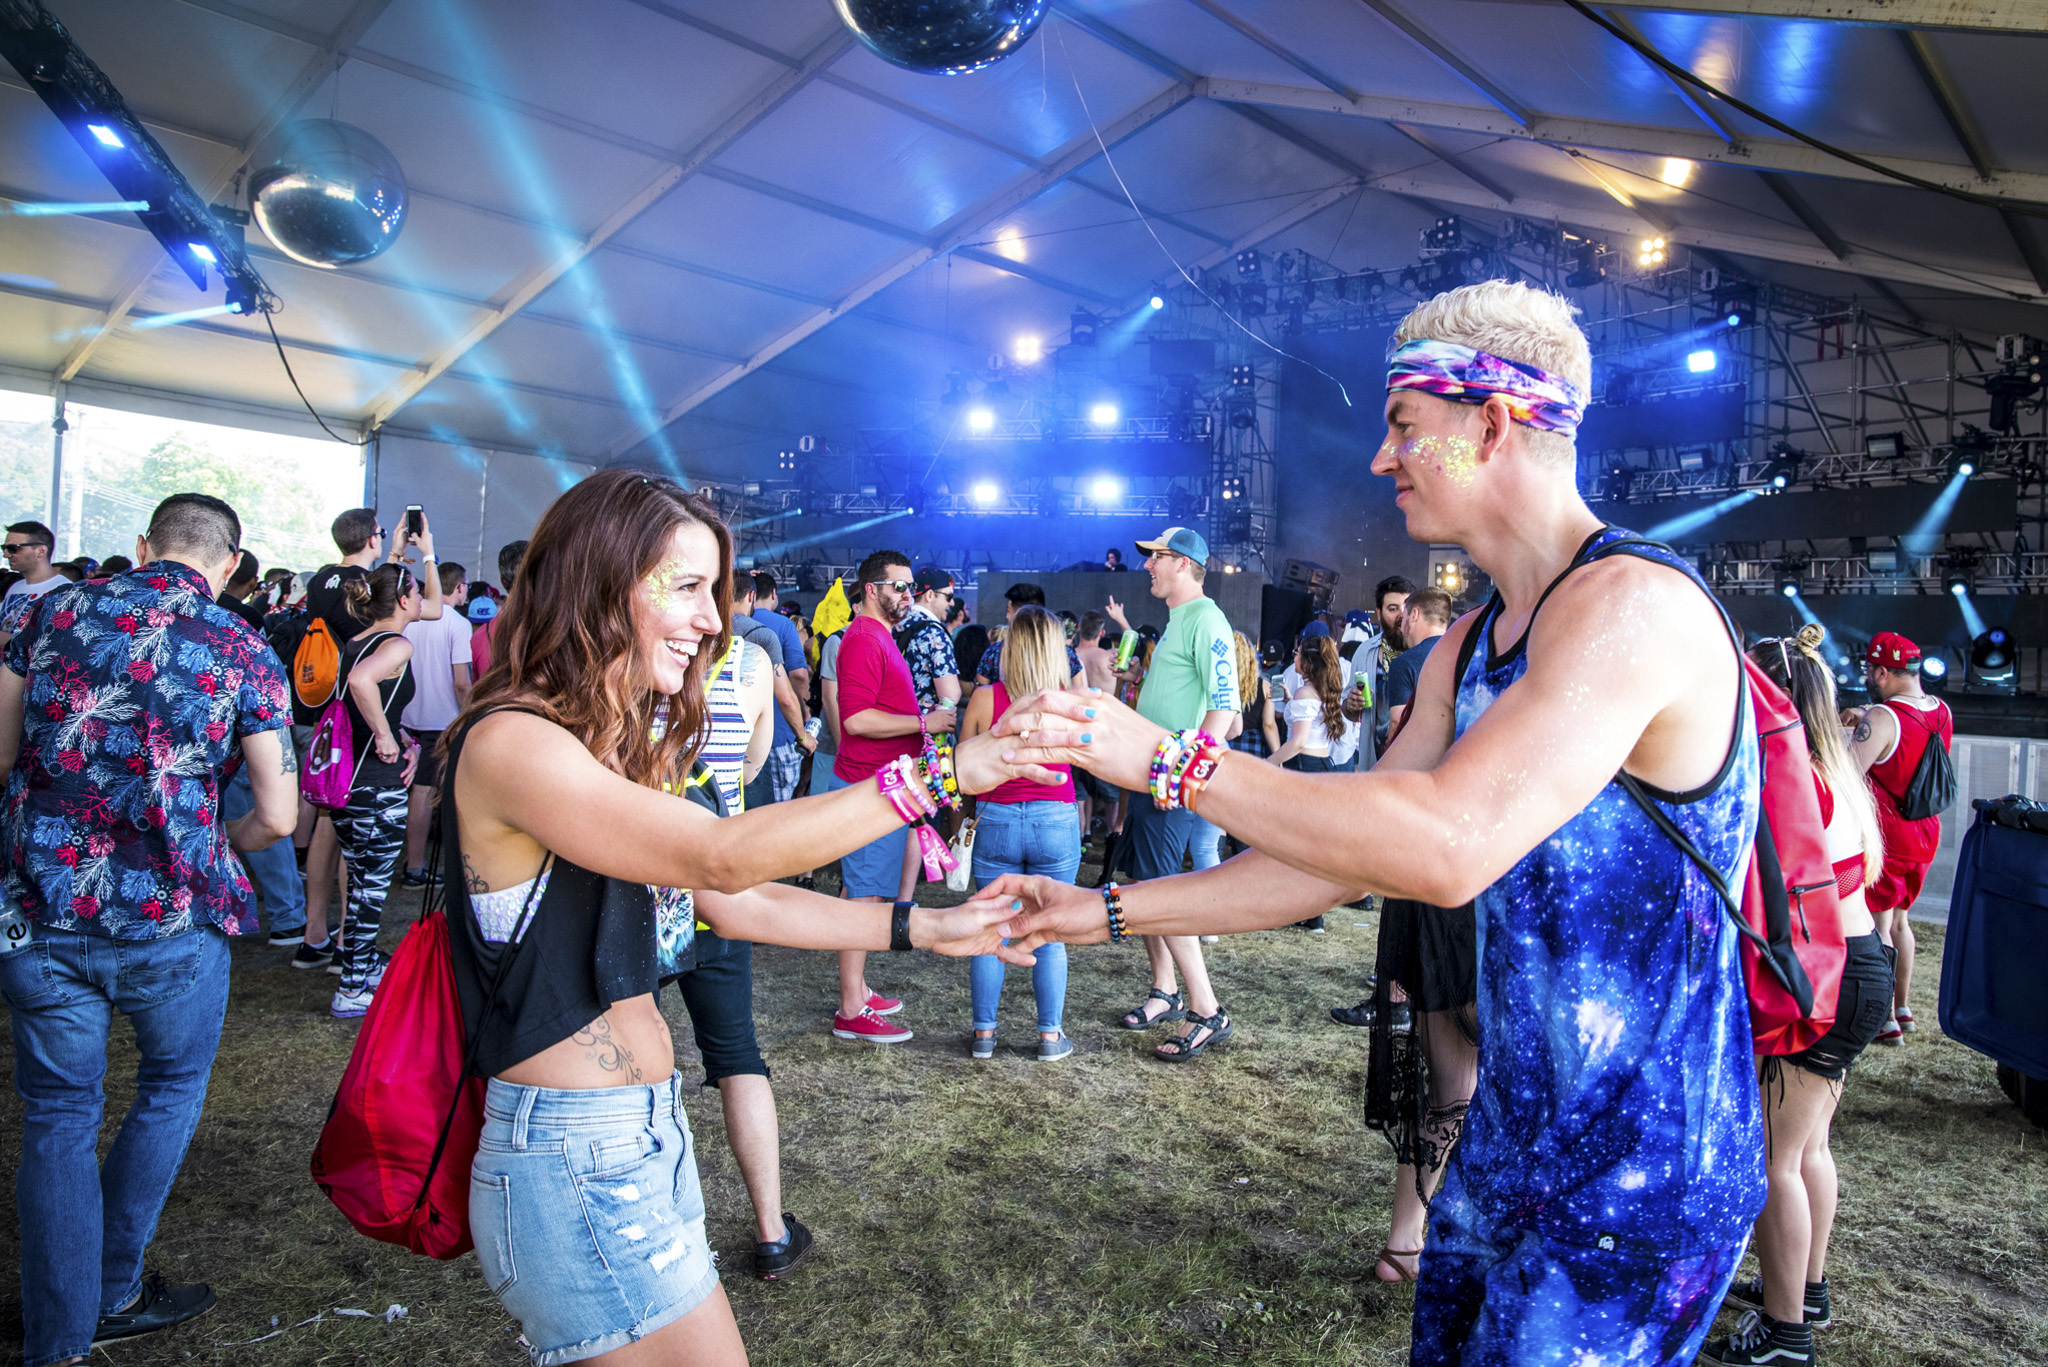 Spring Awakening Music Festival will move to Douglas Park in 2019